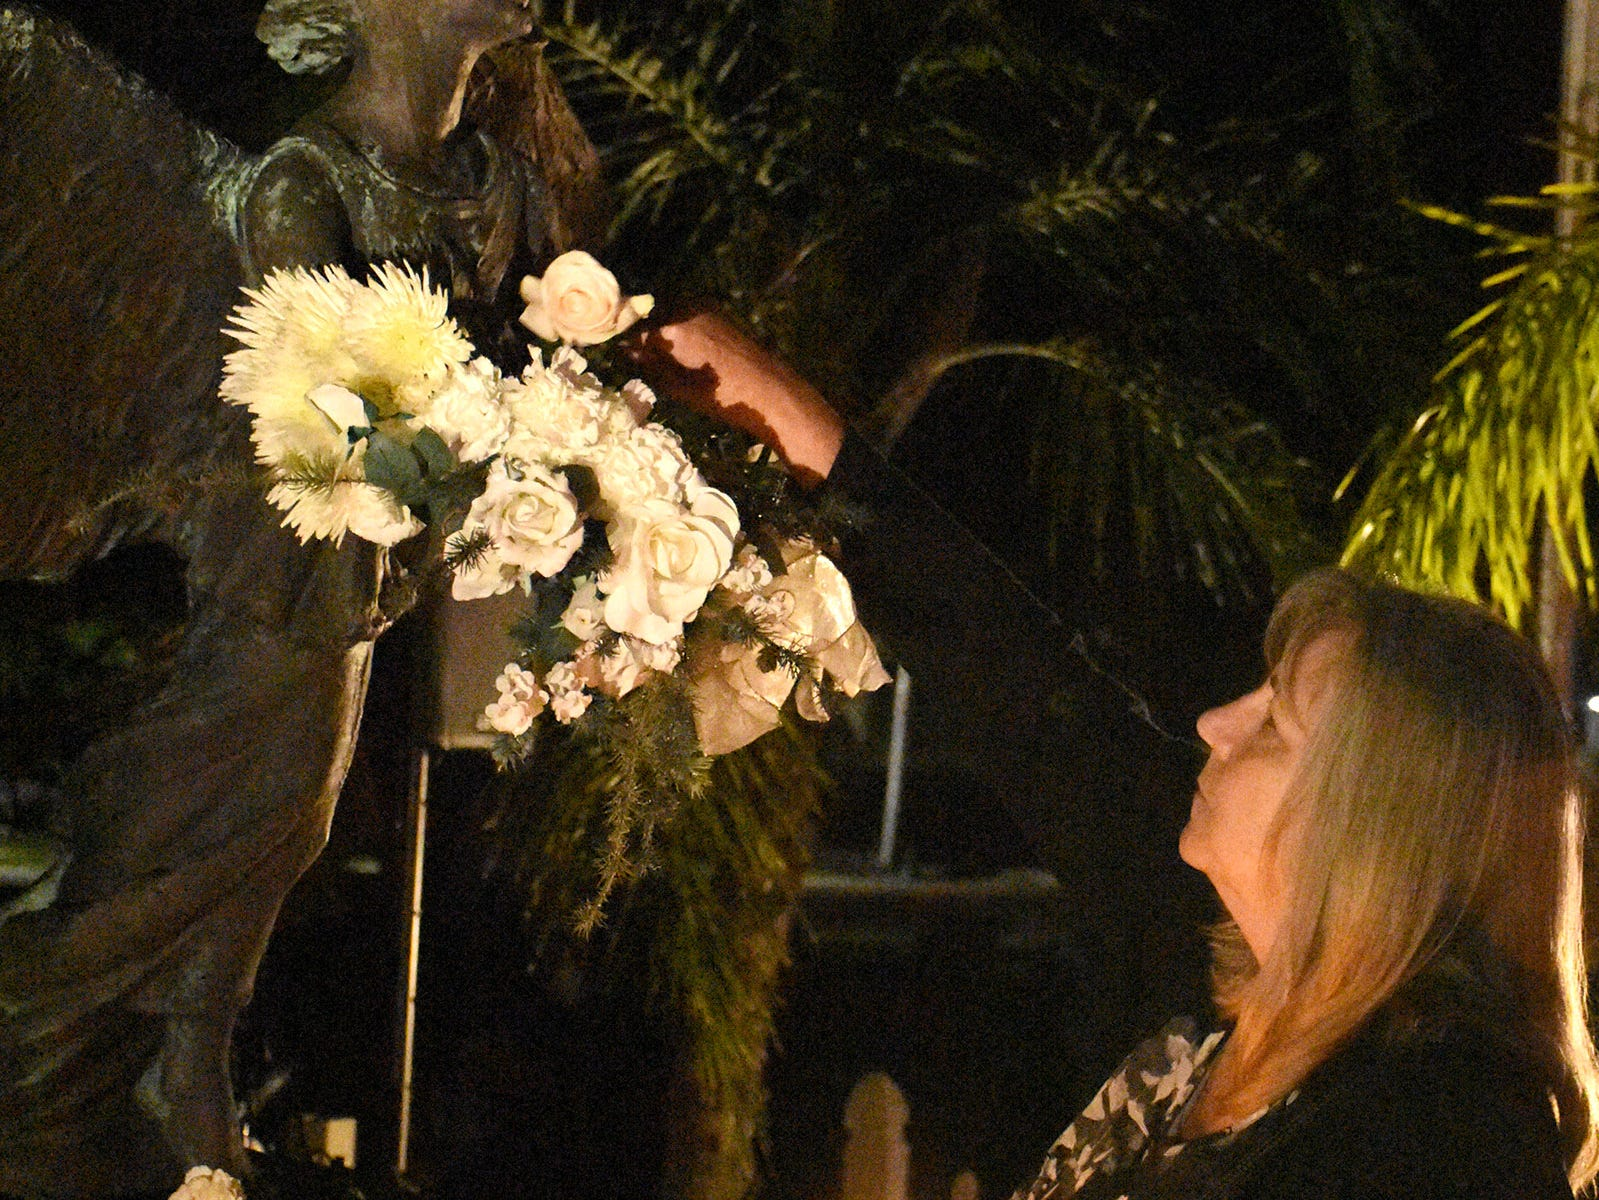 Mourners lay flowers on the angel at the end of the Marco Island Christmas Box Angel Memorial Service on Thursday evening.